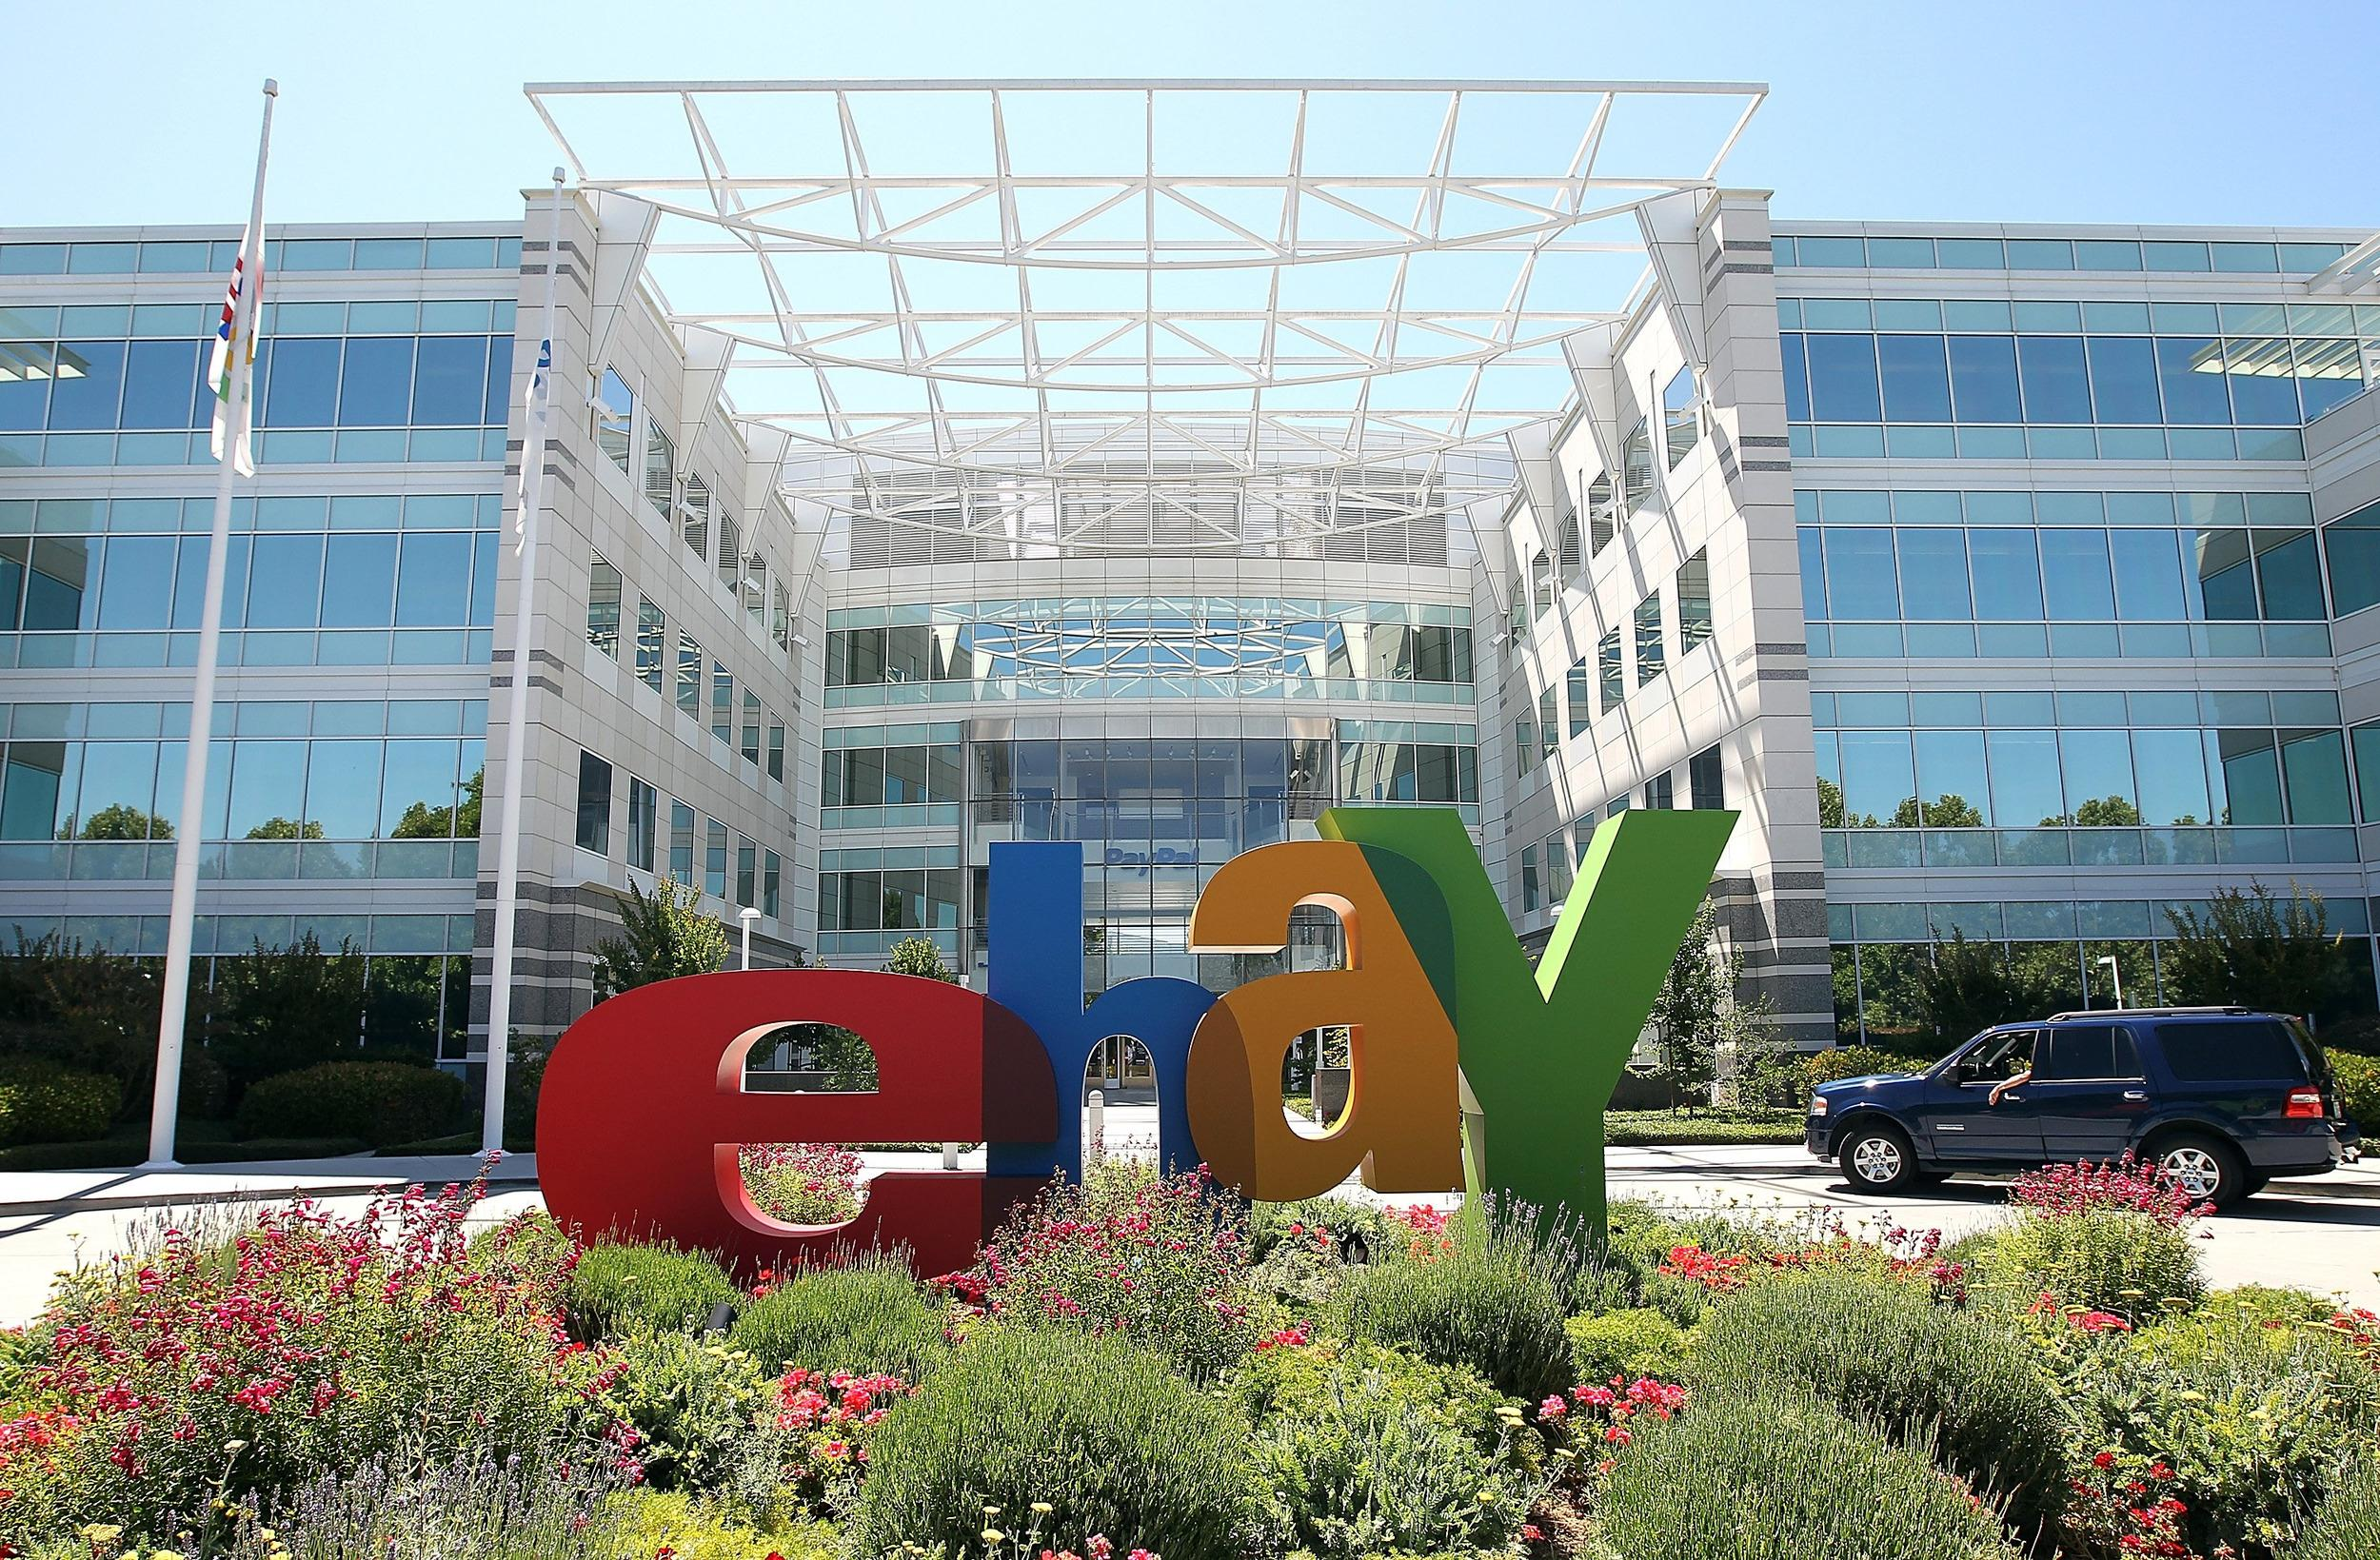 eBay announced a partnership with Sotheby's to make it easier to auction art and antiques online.